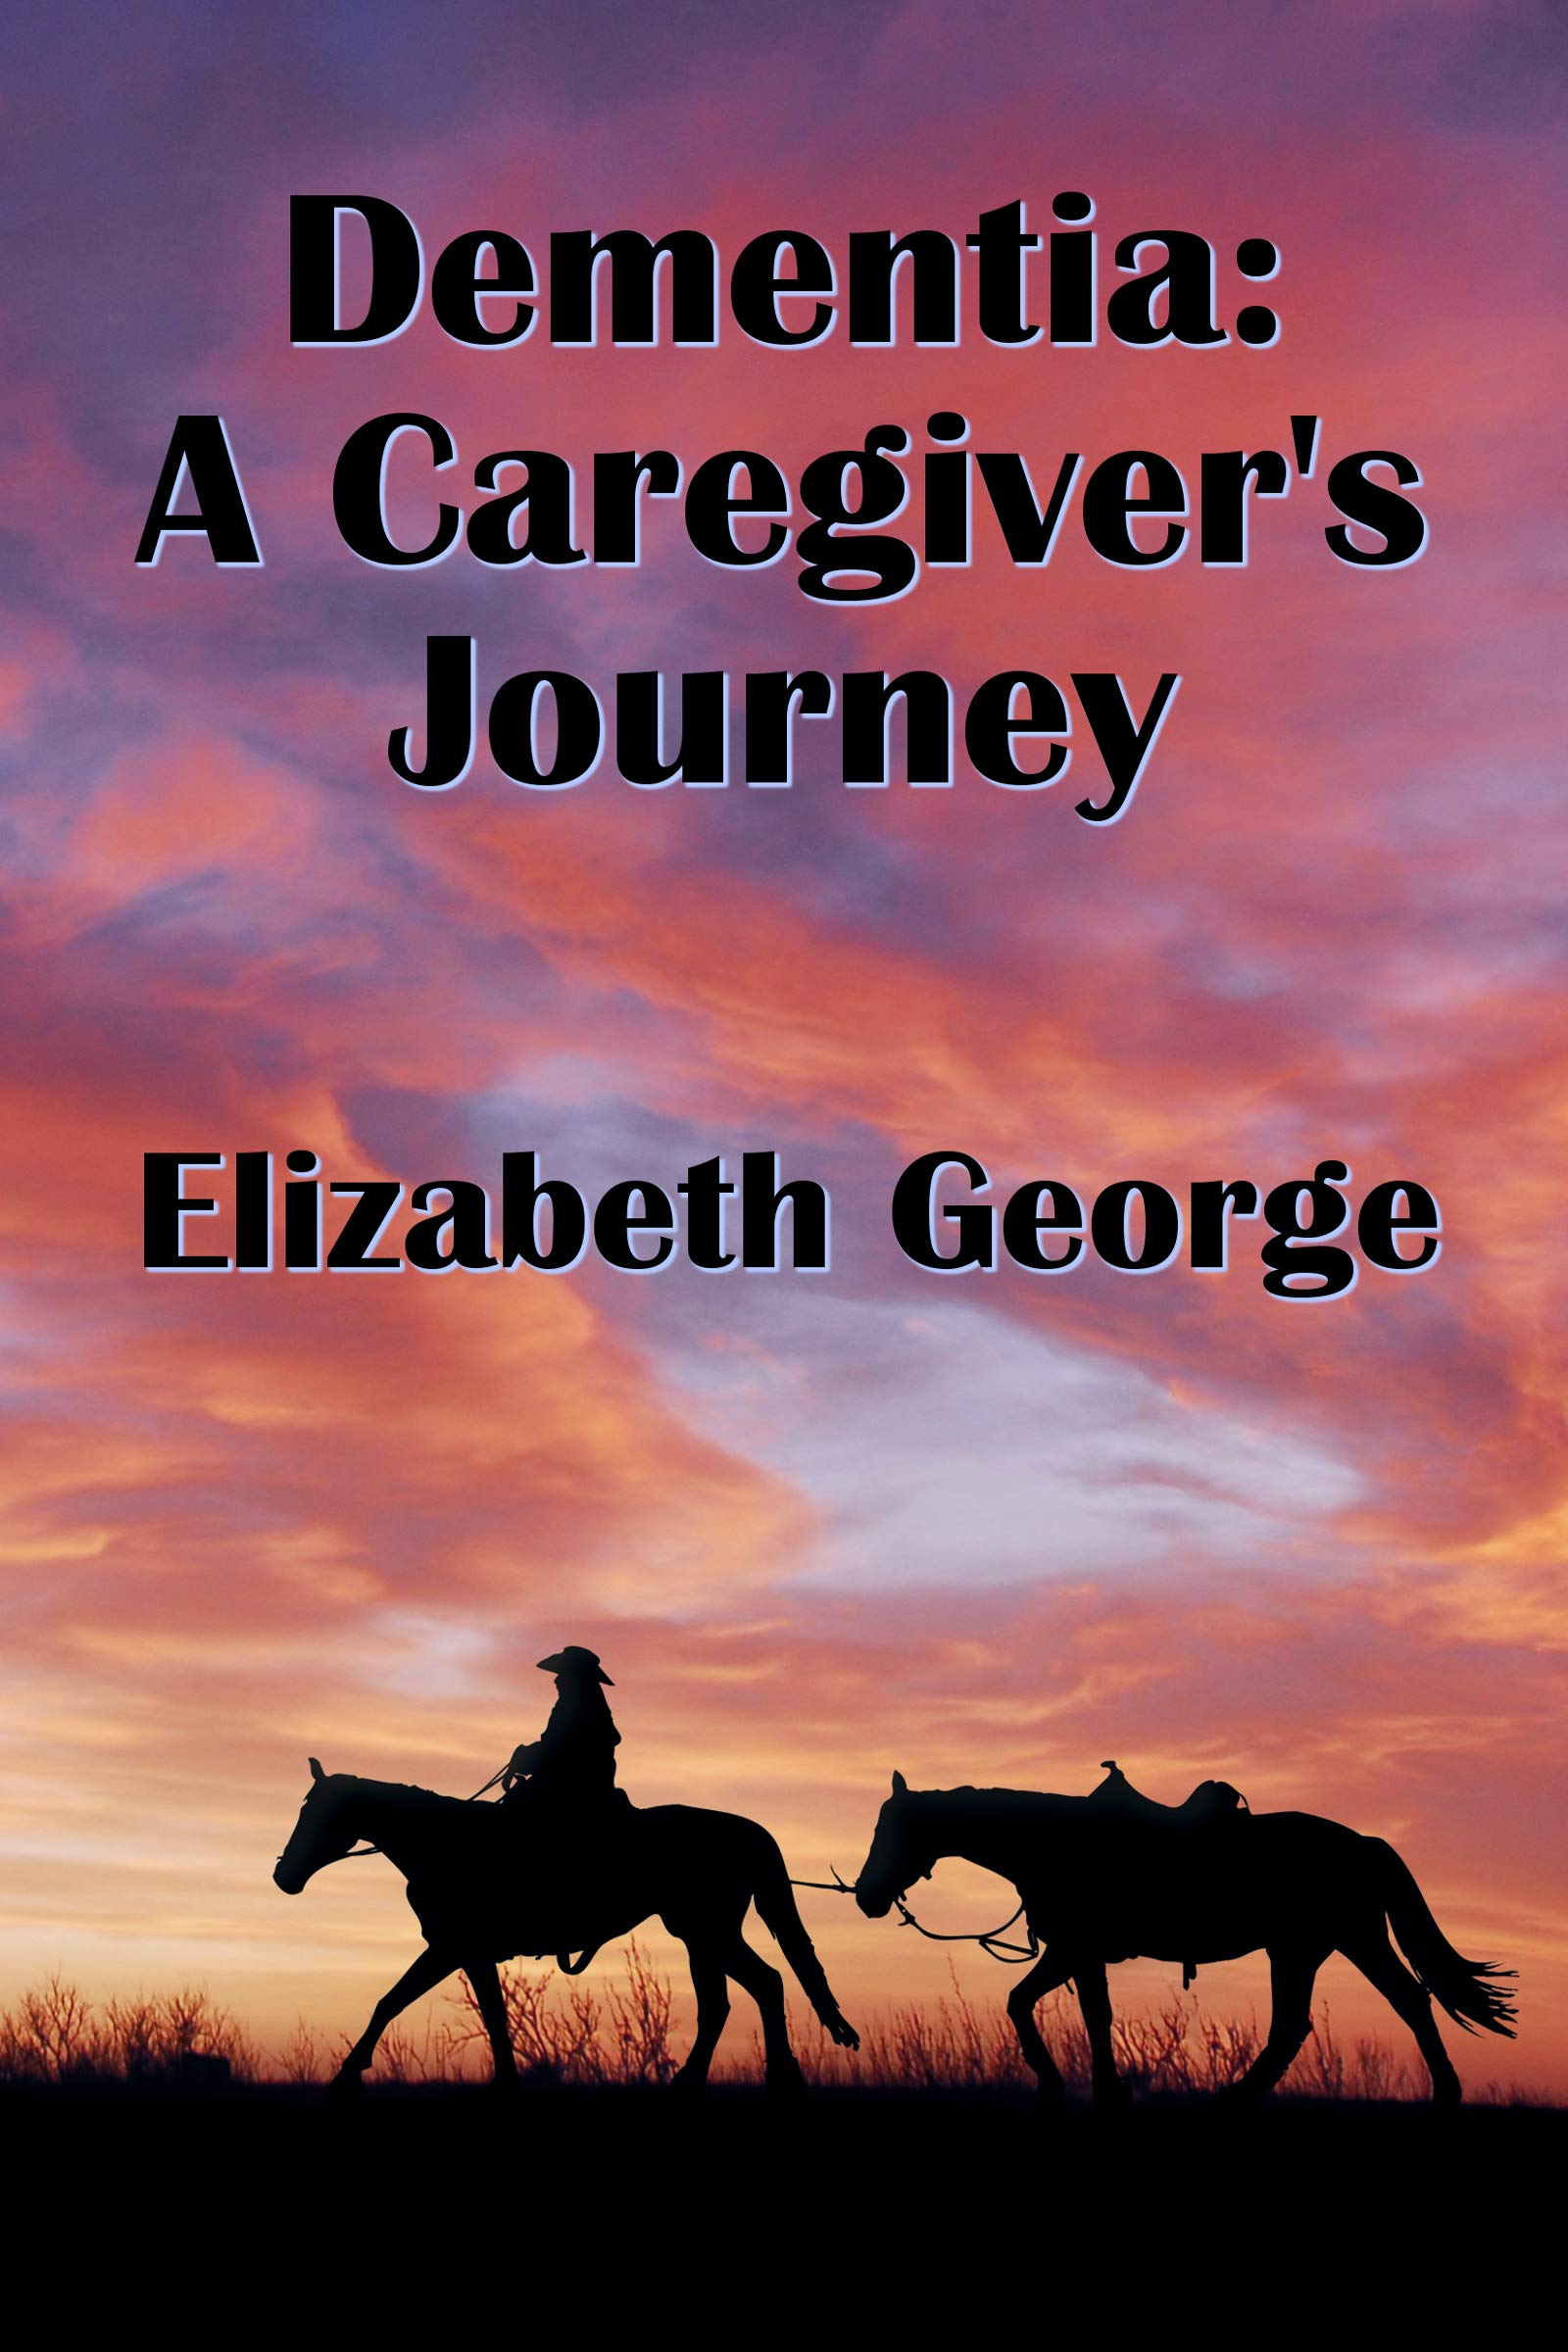 Dementia: A Caregiver's Journey